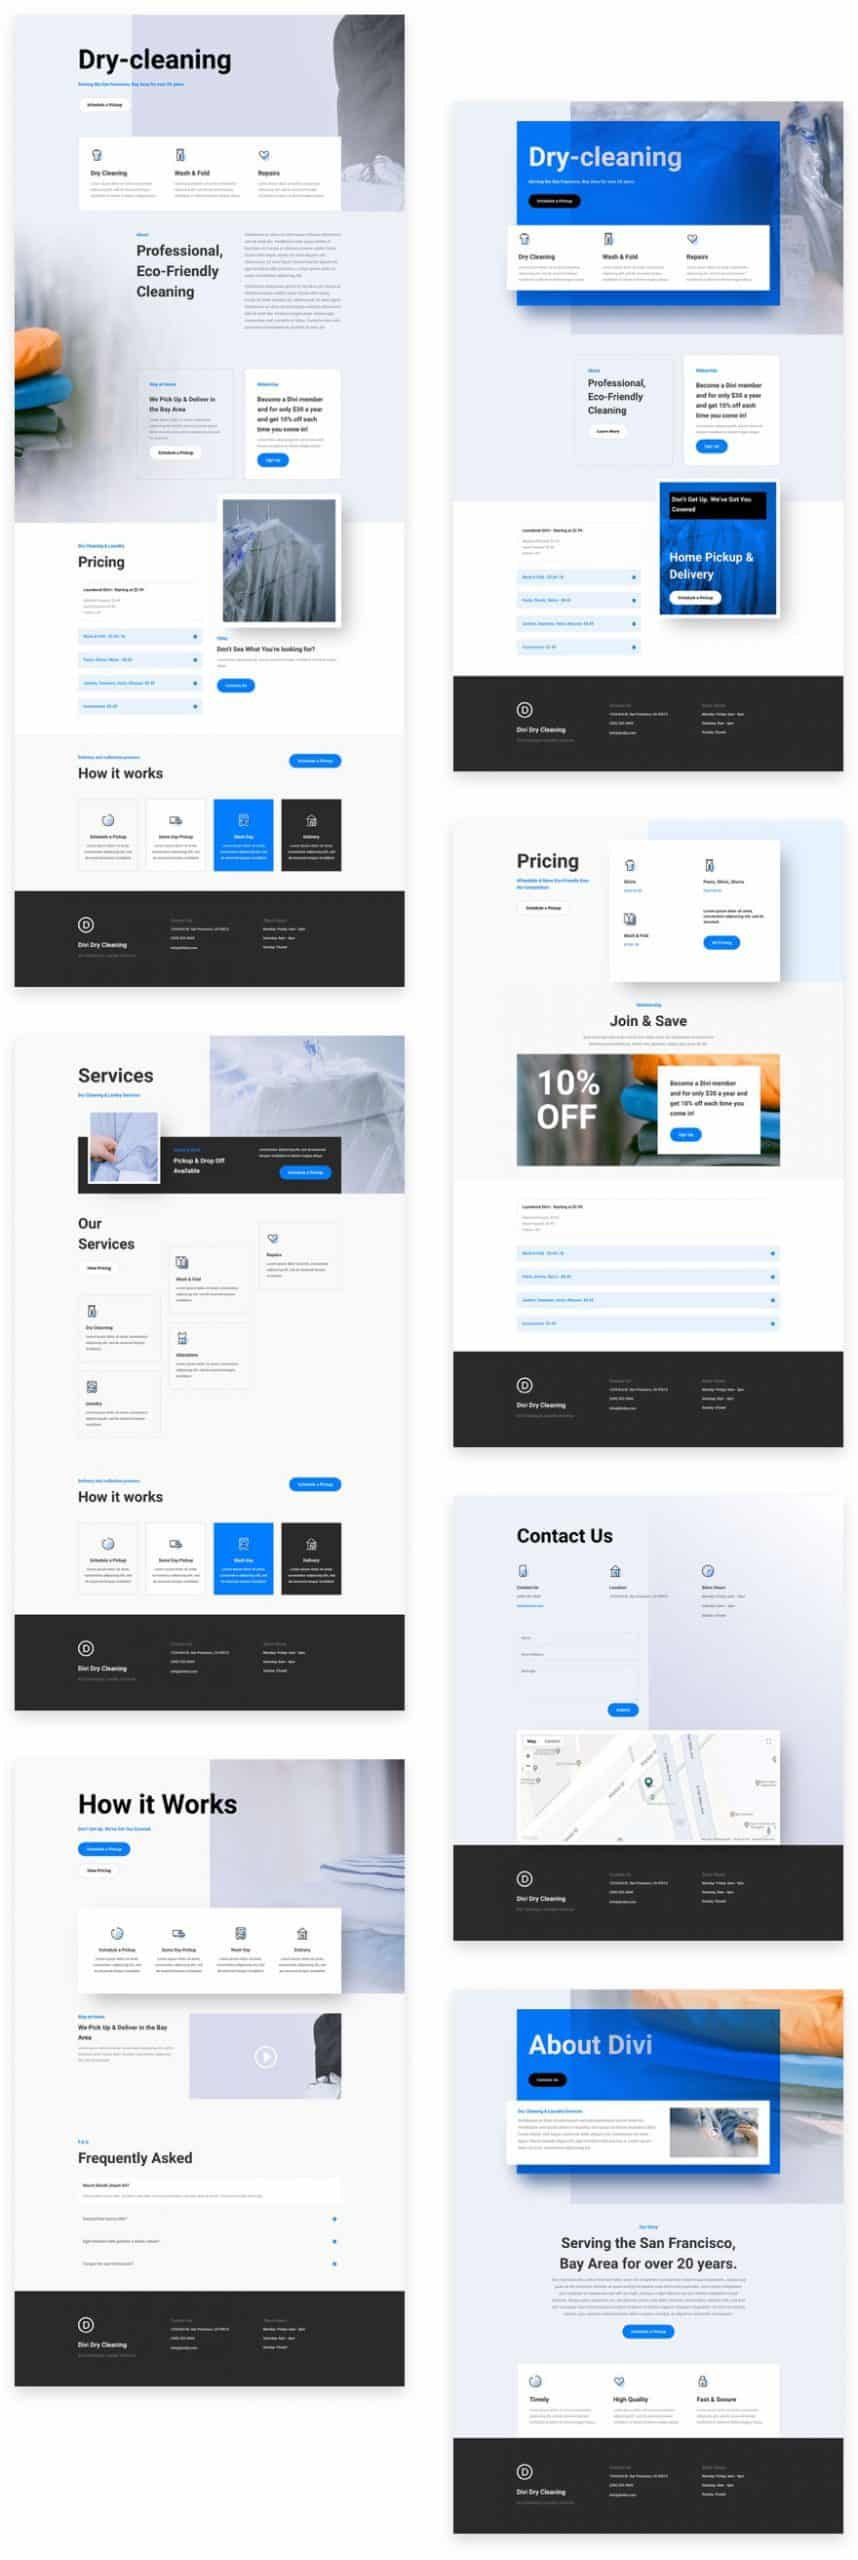 Dry Cleaning Divi Layout Pack